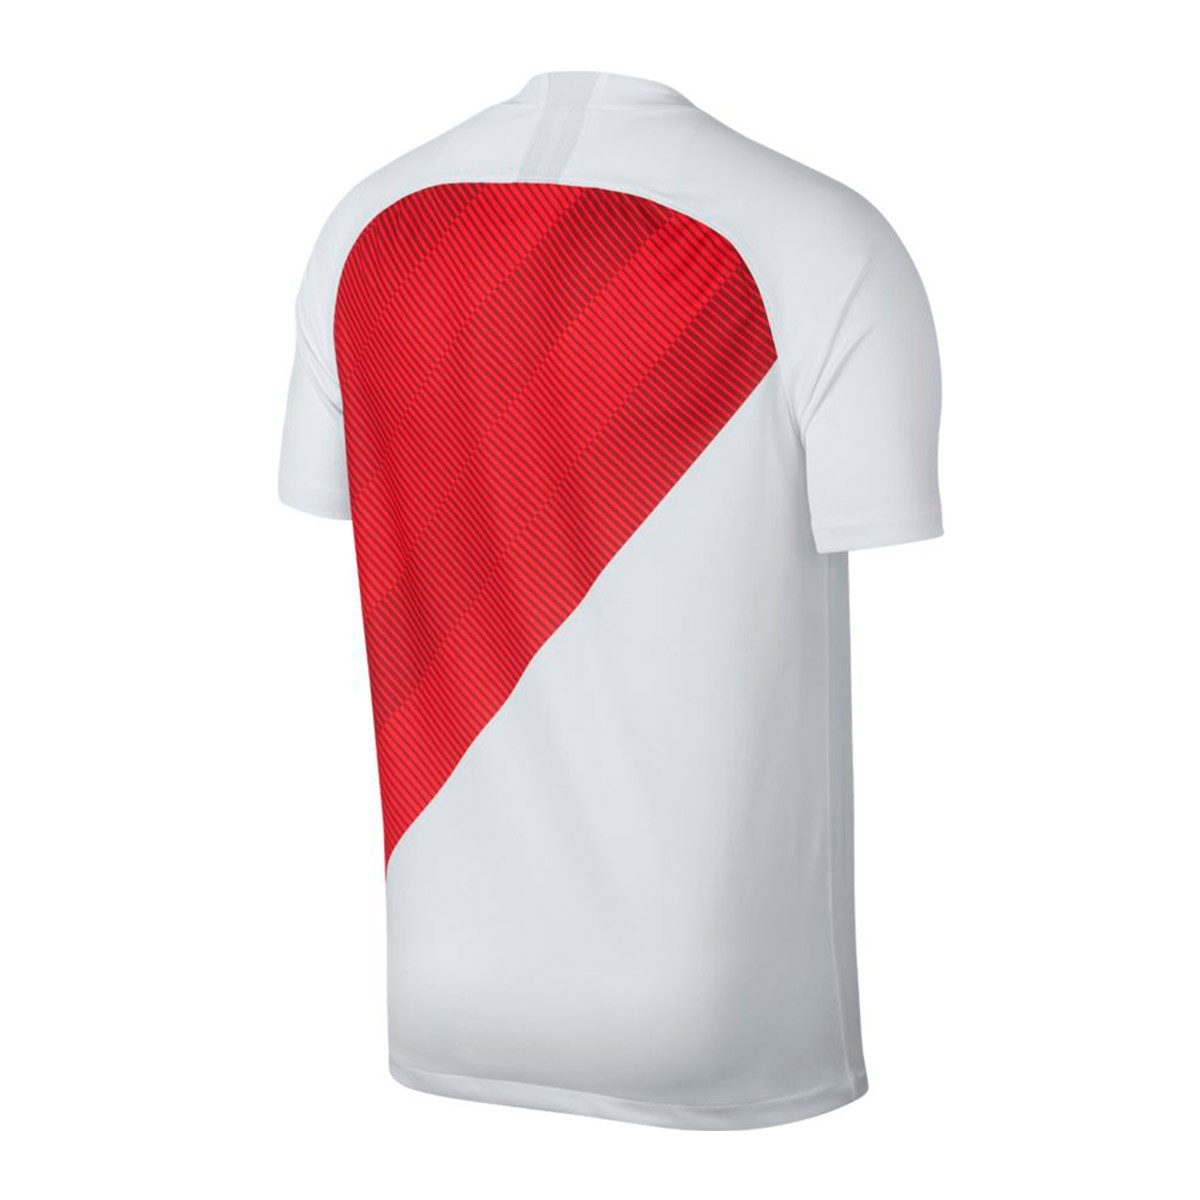 Jersey Nike AS Monaco Stadium 2018-2019 Home White - Soloporteros es ahora  Fútbol Emotion 900bfa26e4a